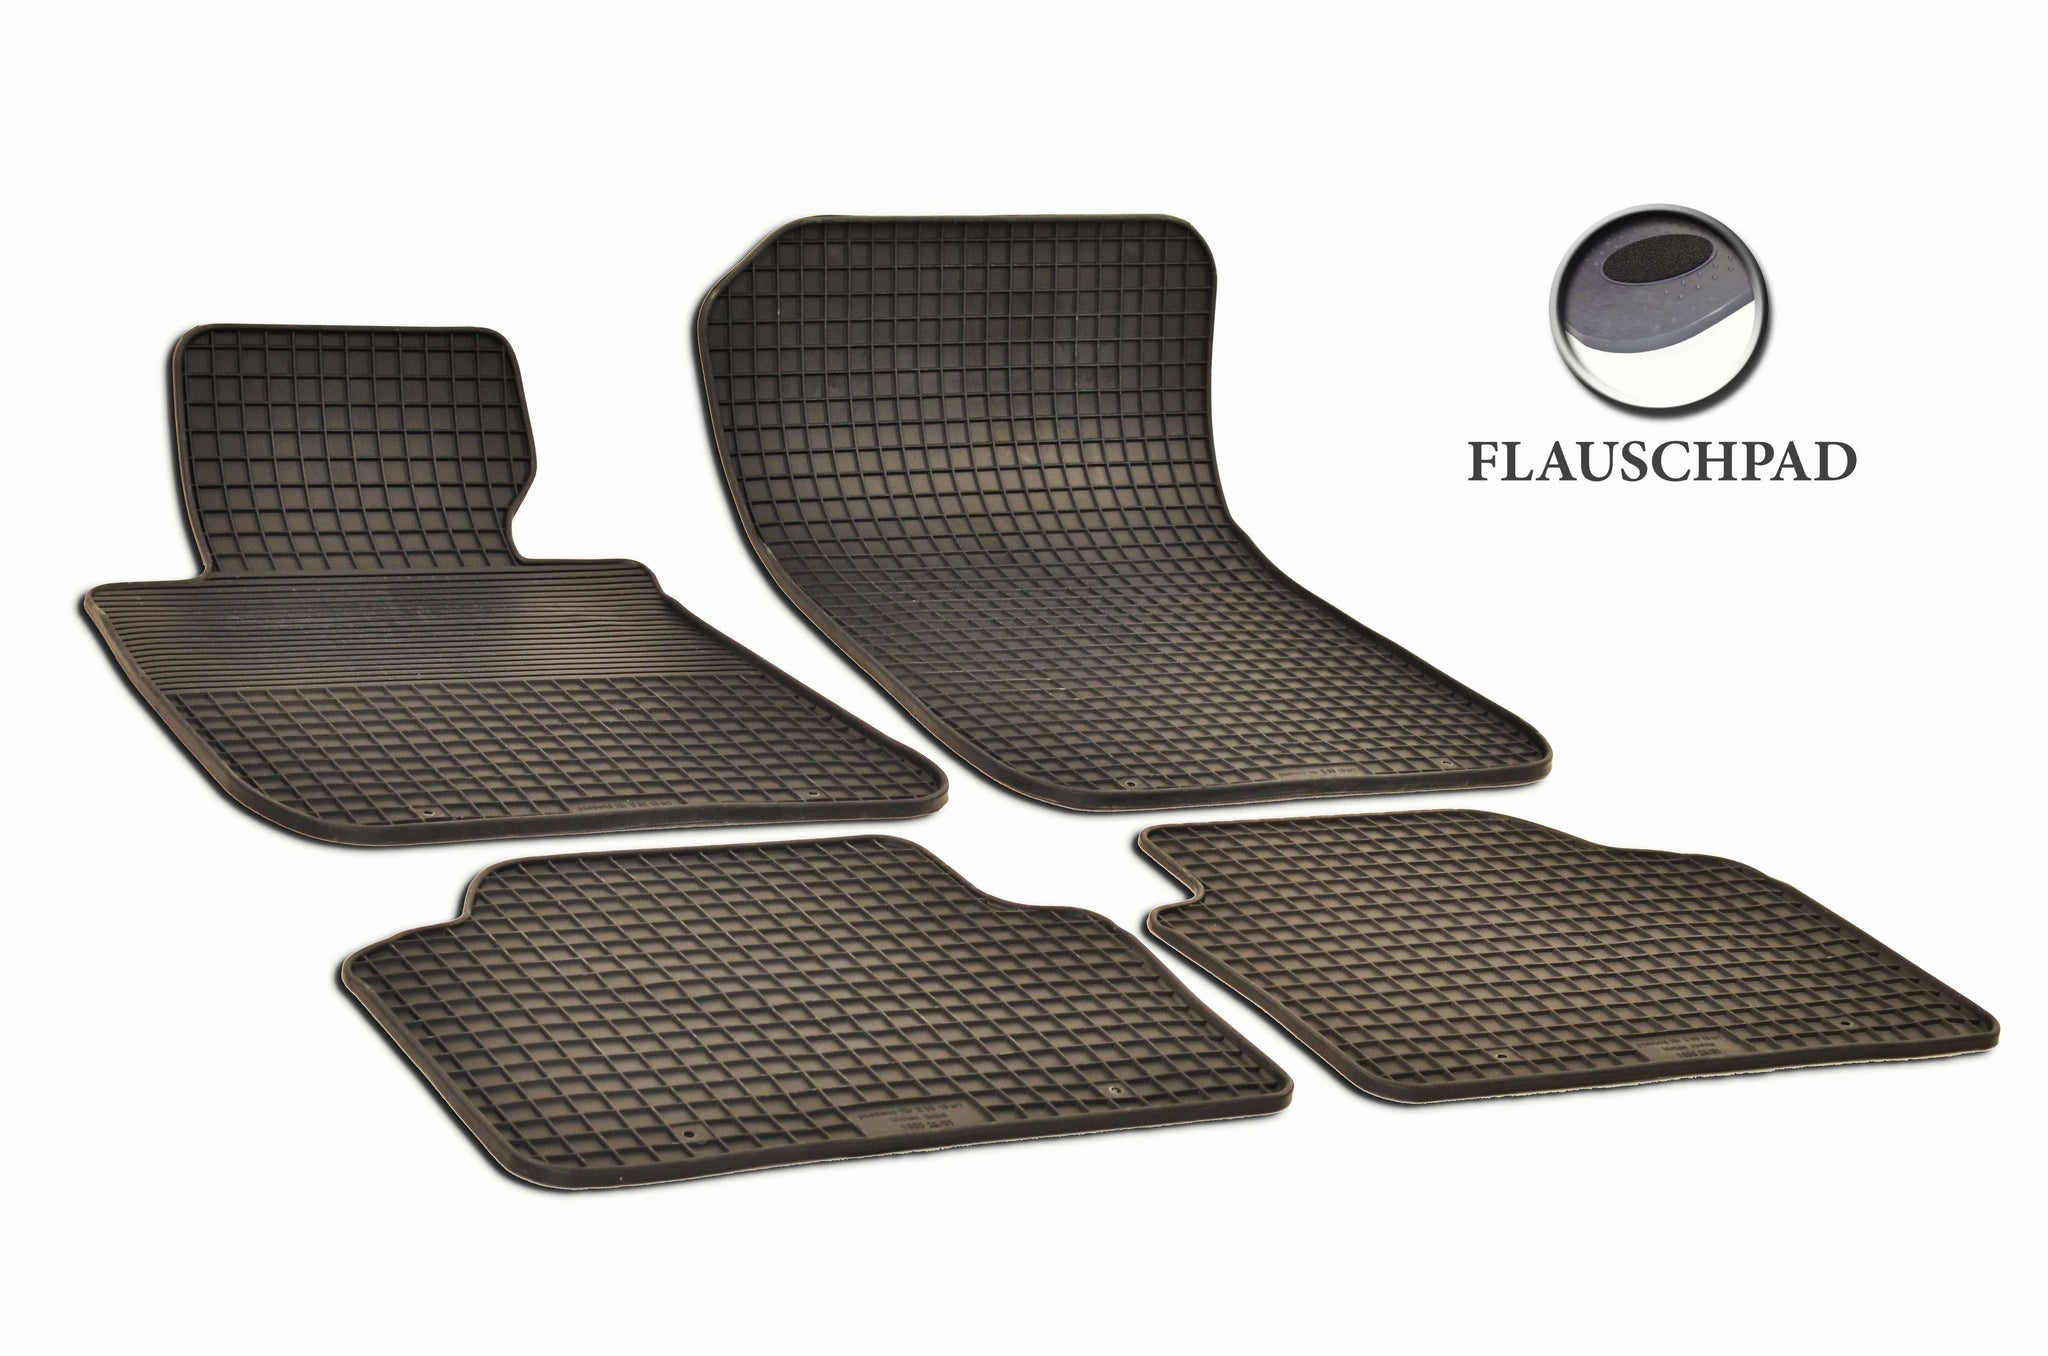 BMW 325i 2006 Sedan E90 Set of 4 Black Rubber OE Fit All Weather Car Floor Mats